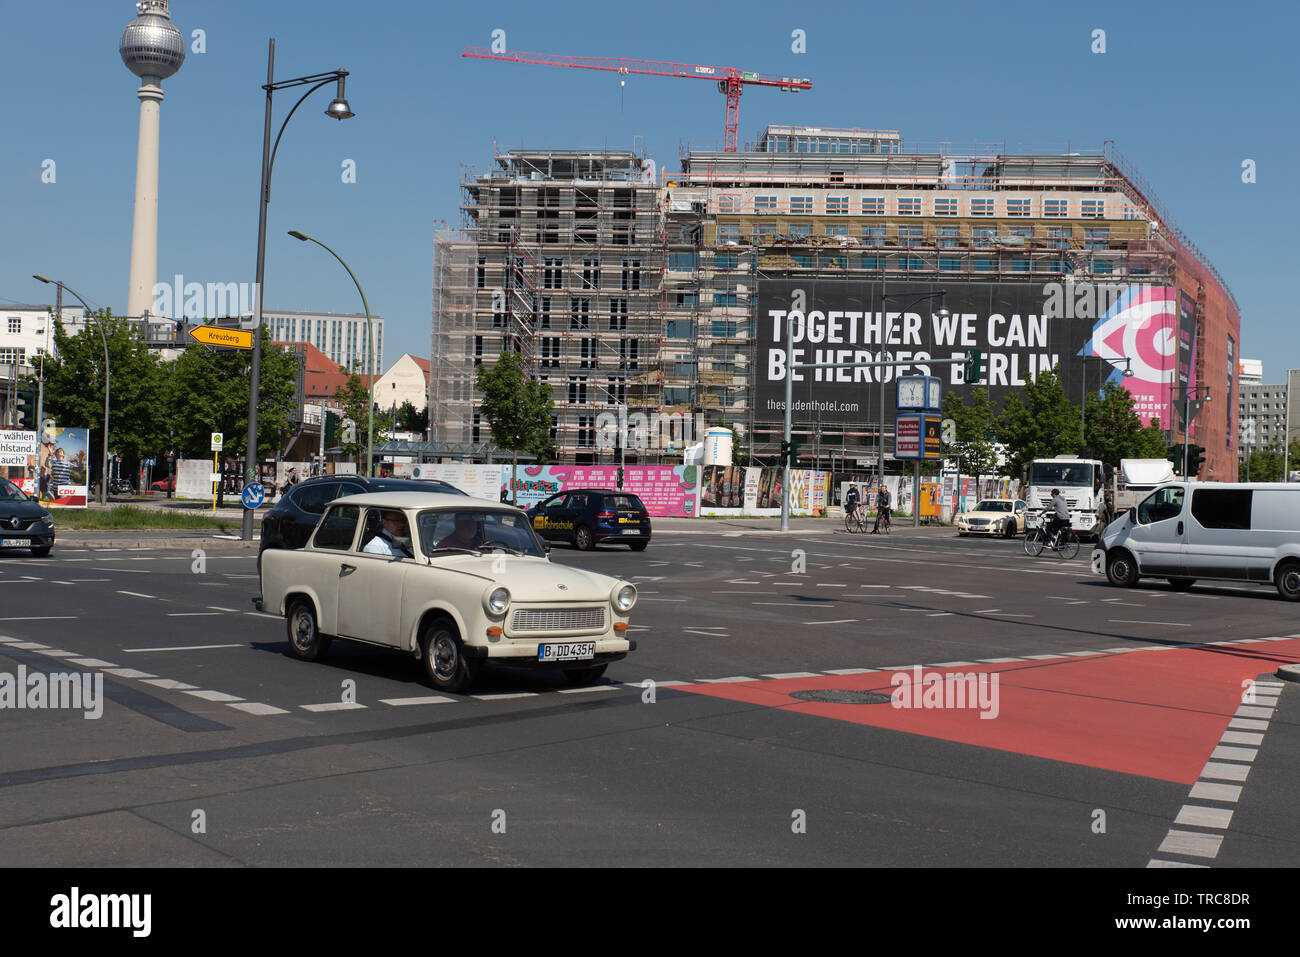 Trabant - also called Trabi - in Berlin, Germany. - Stock Image